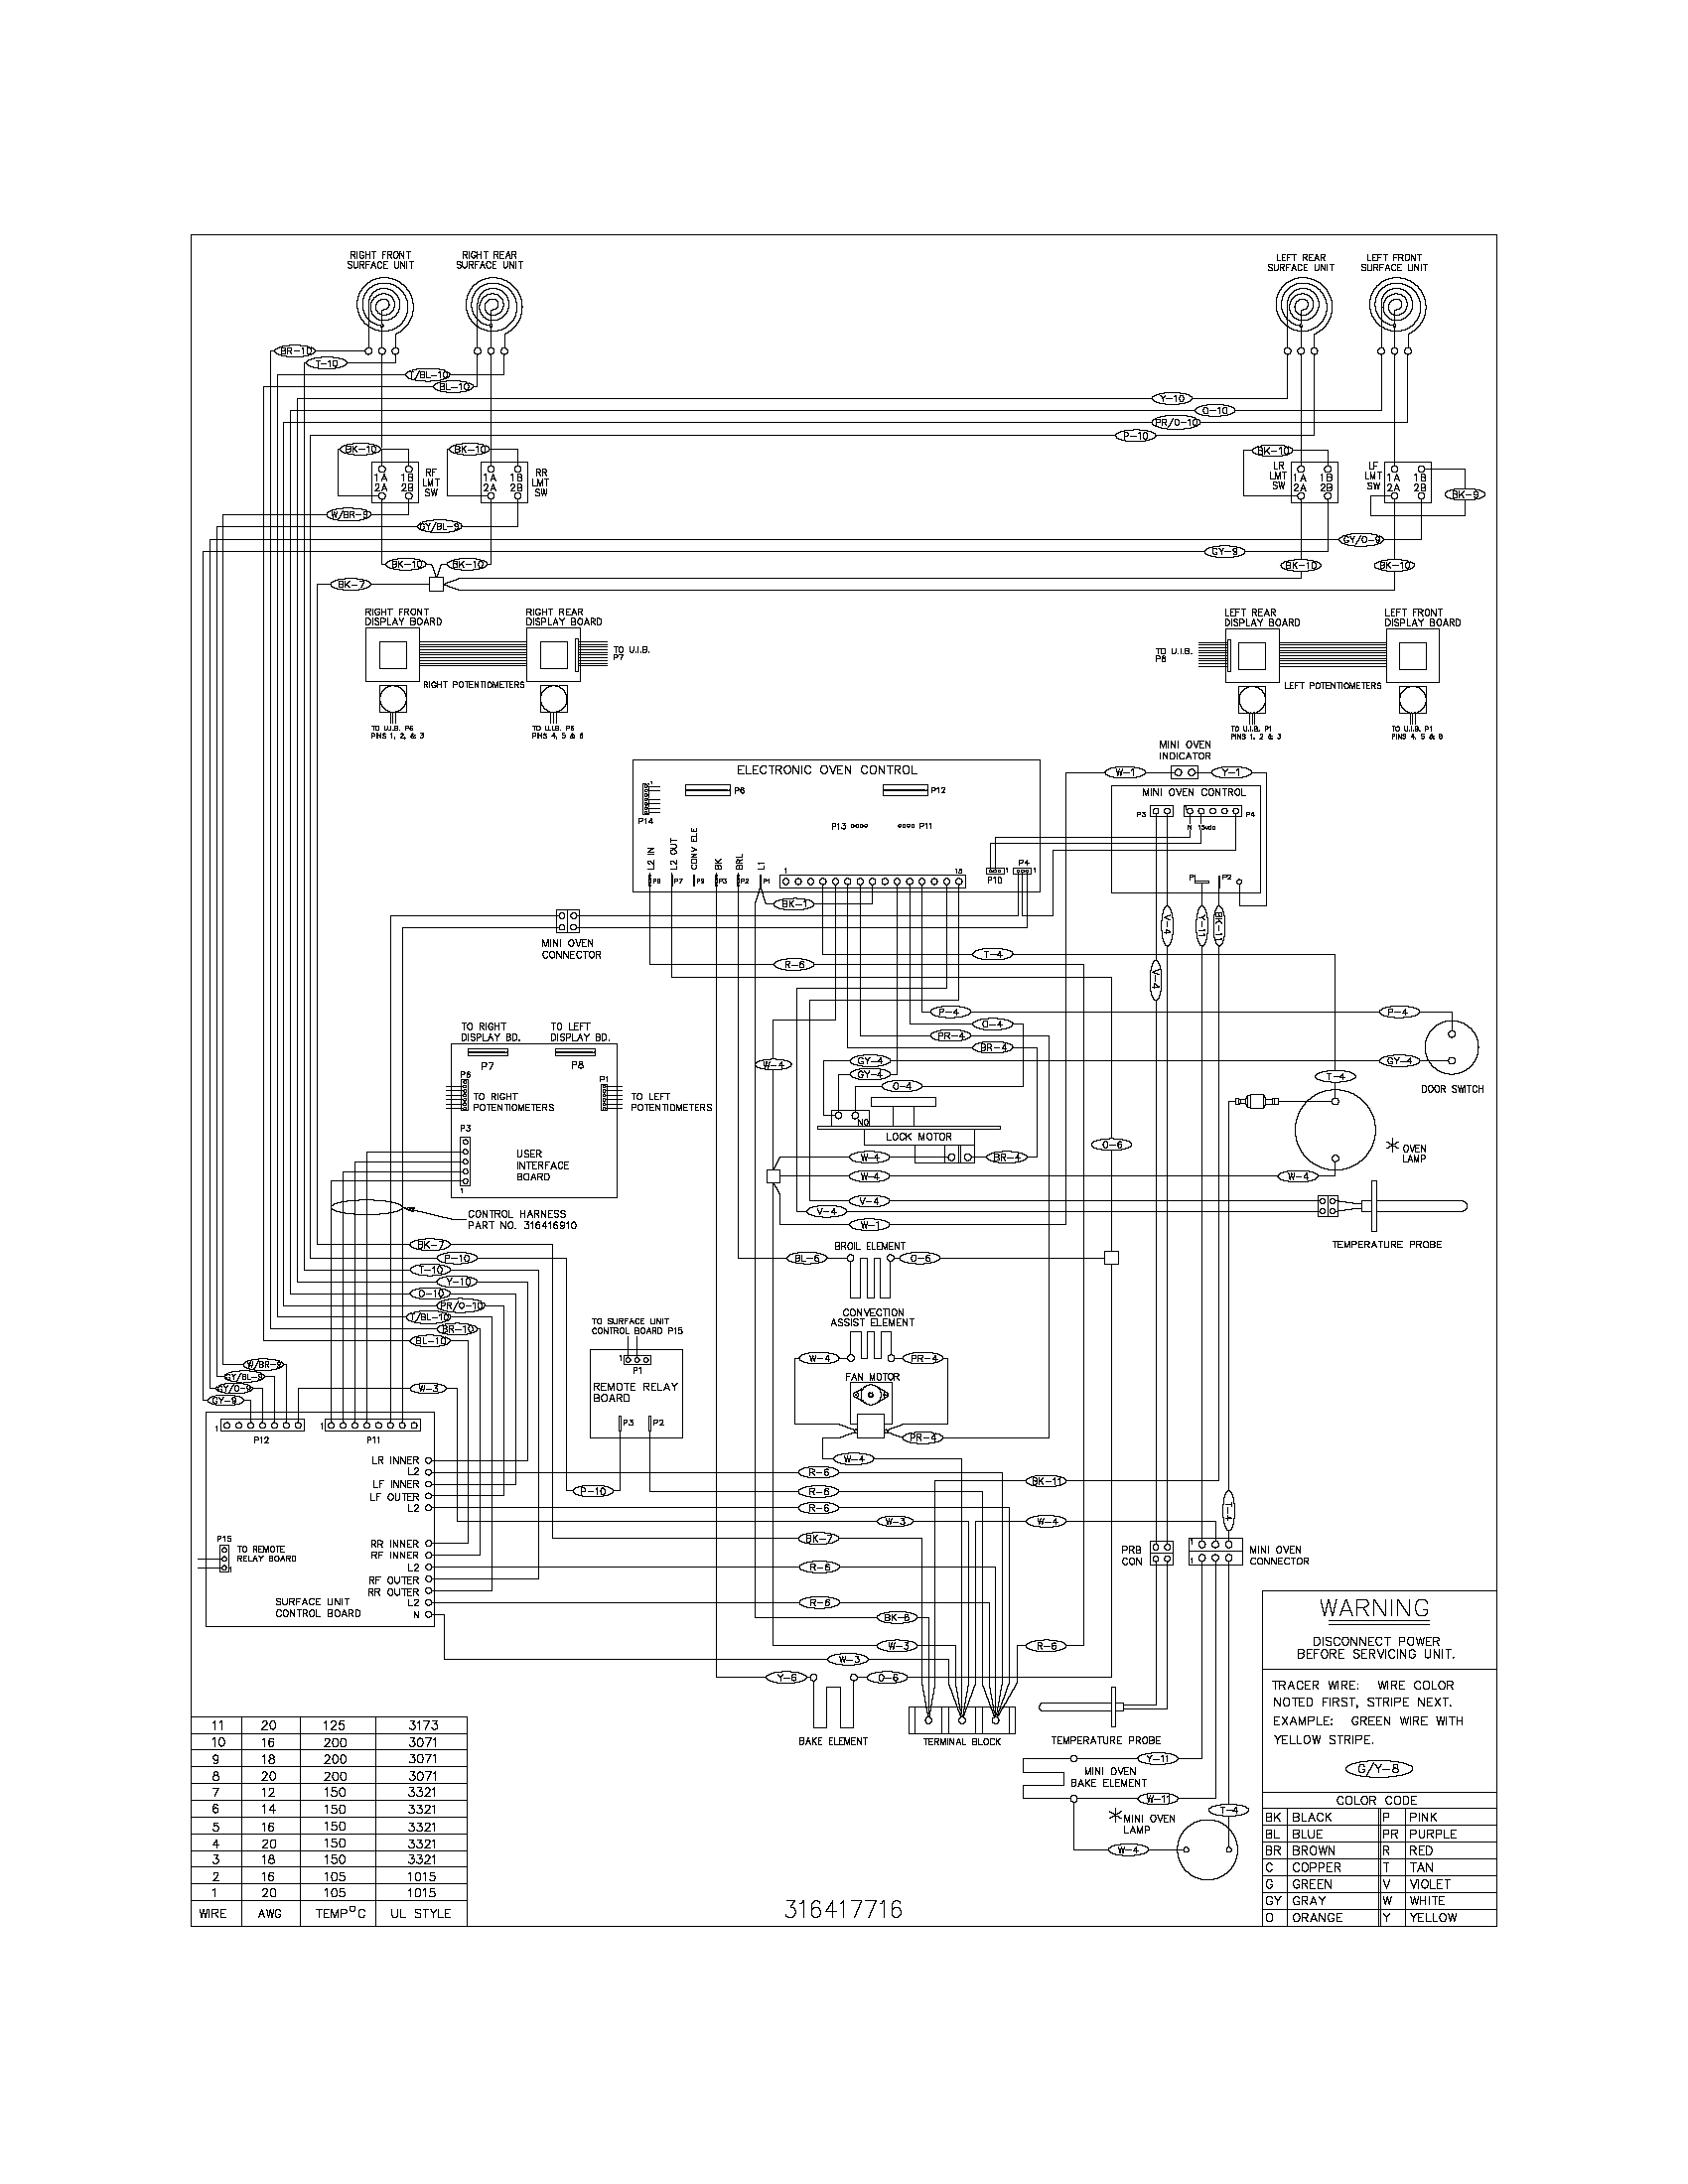 wiring diagram parts frigidaire glefm397dsb electric range timer stove clocks and electric fireplace wiring diagram at reclaimingppi.co